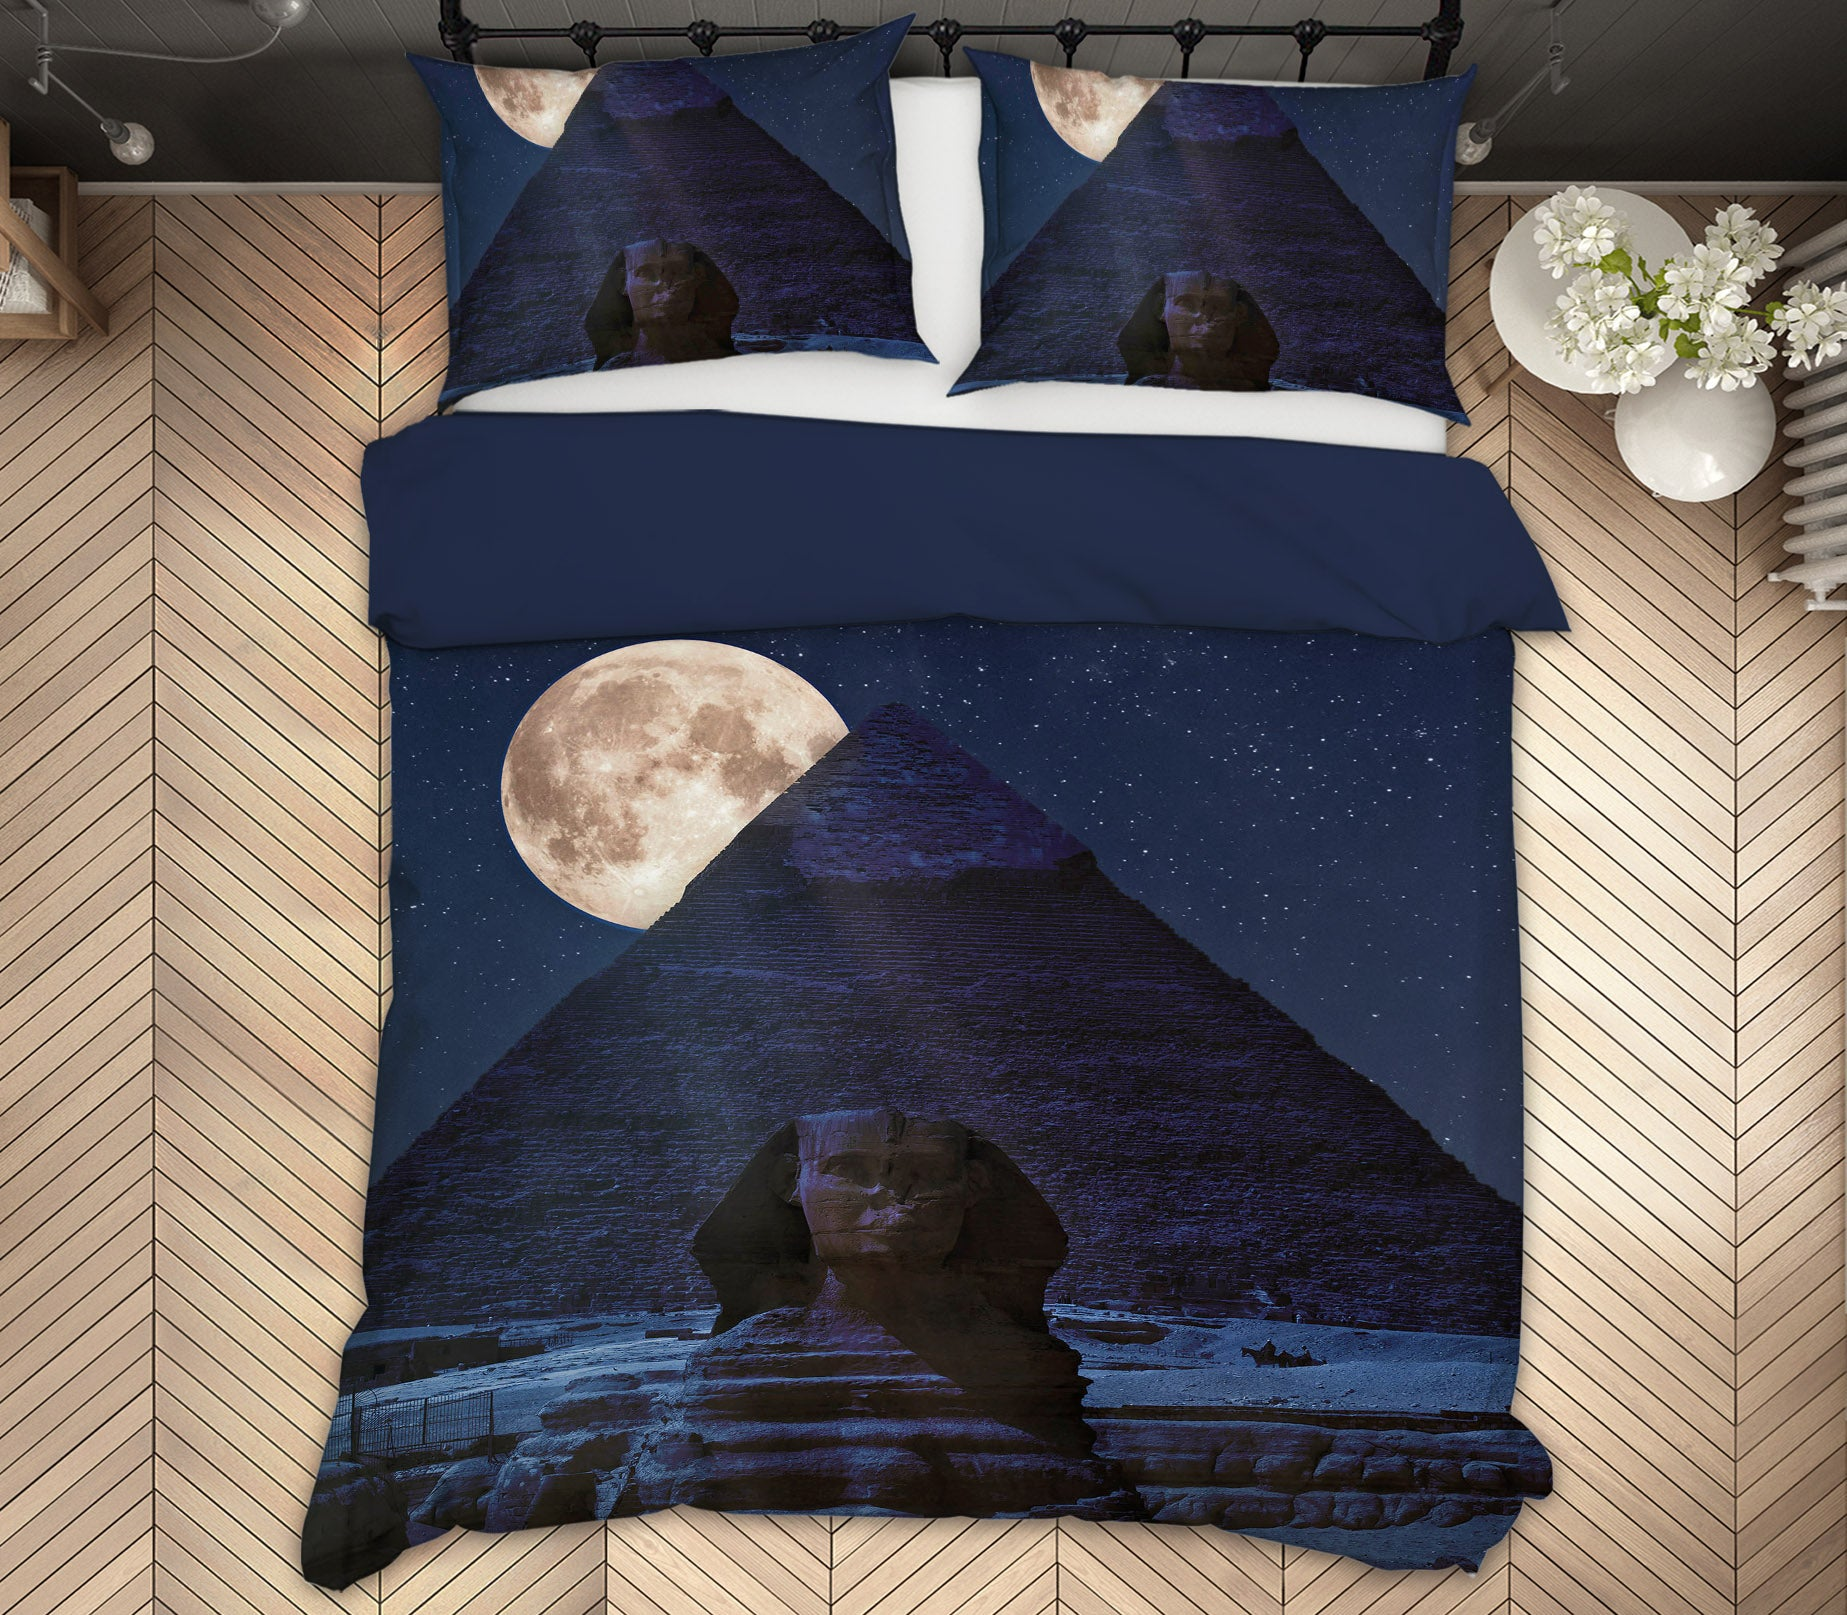 3D Moon Palace 155 Marco Carmassi Bedding Bed Pillowcases Quilt